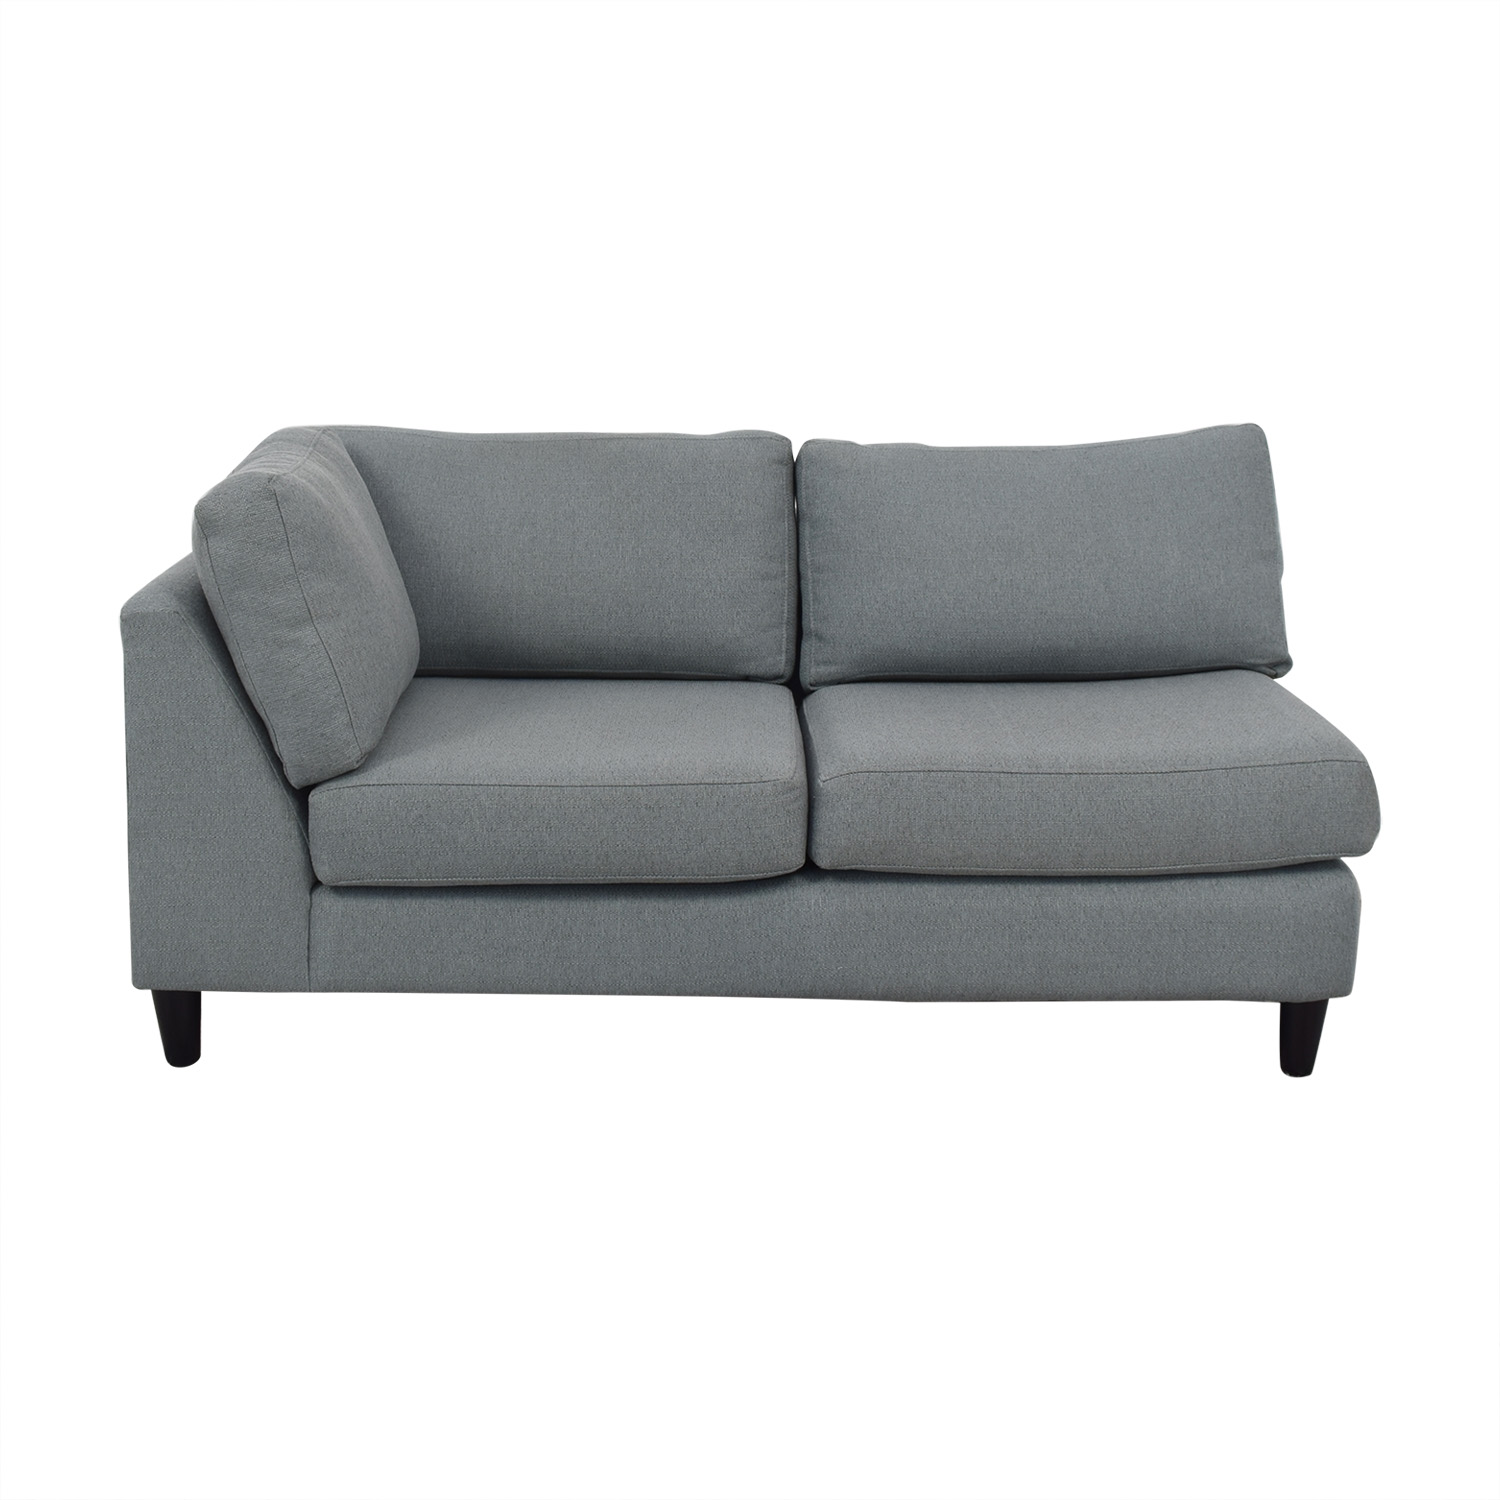 Sofas to Go Sofas to Go Left Arm Chaise  Sofa Sofas